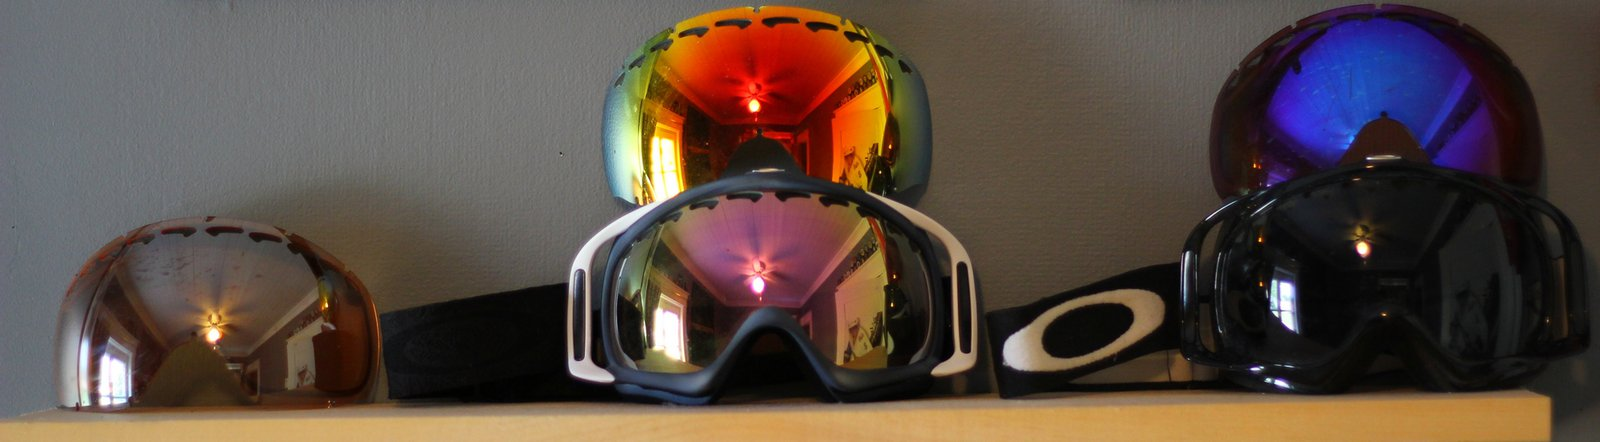 crowbar with 5 lense